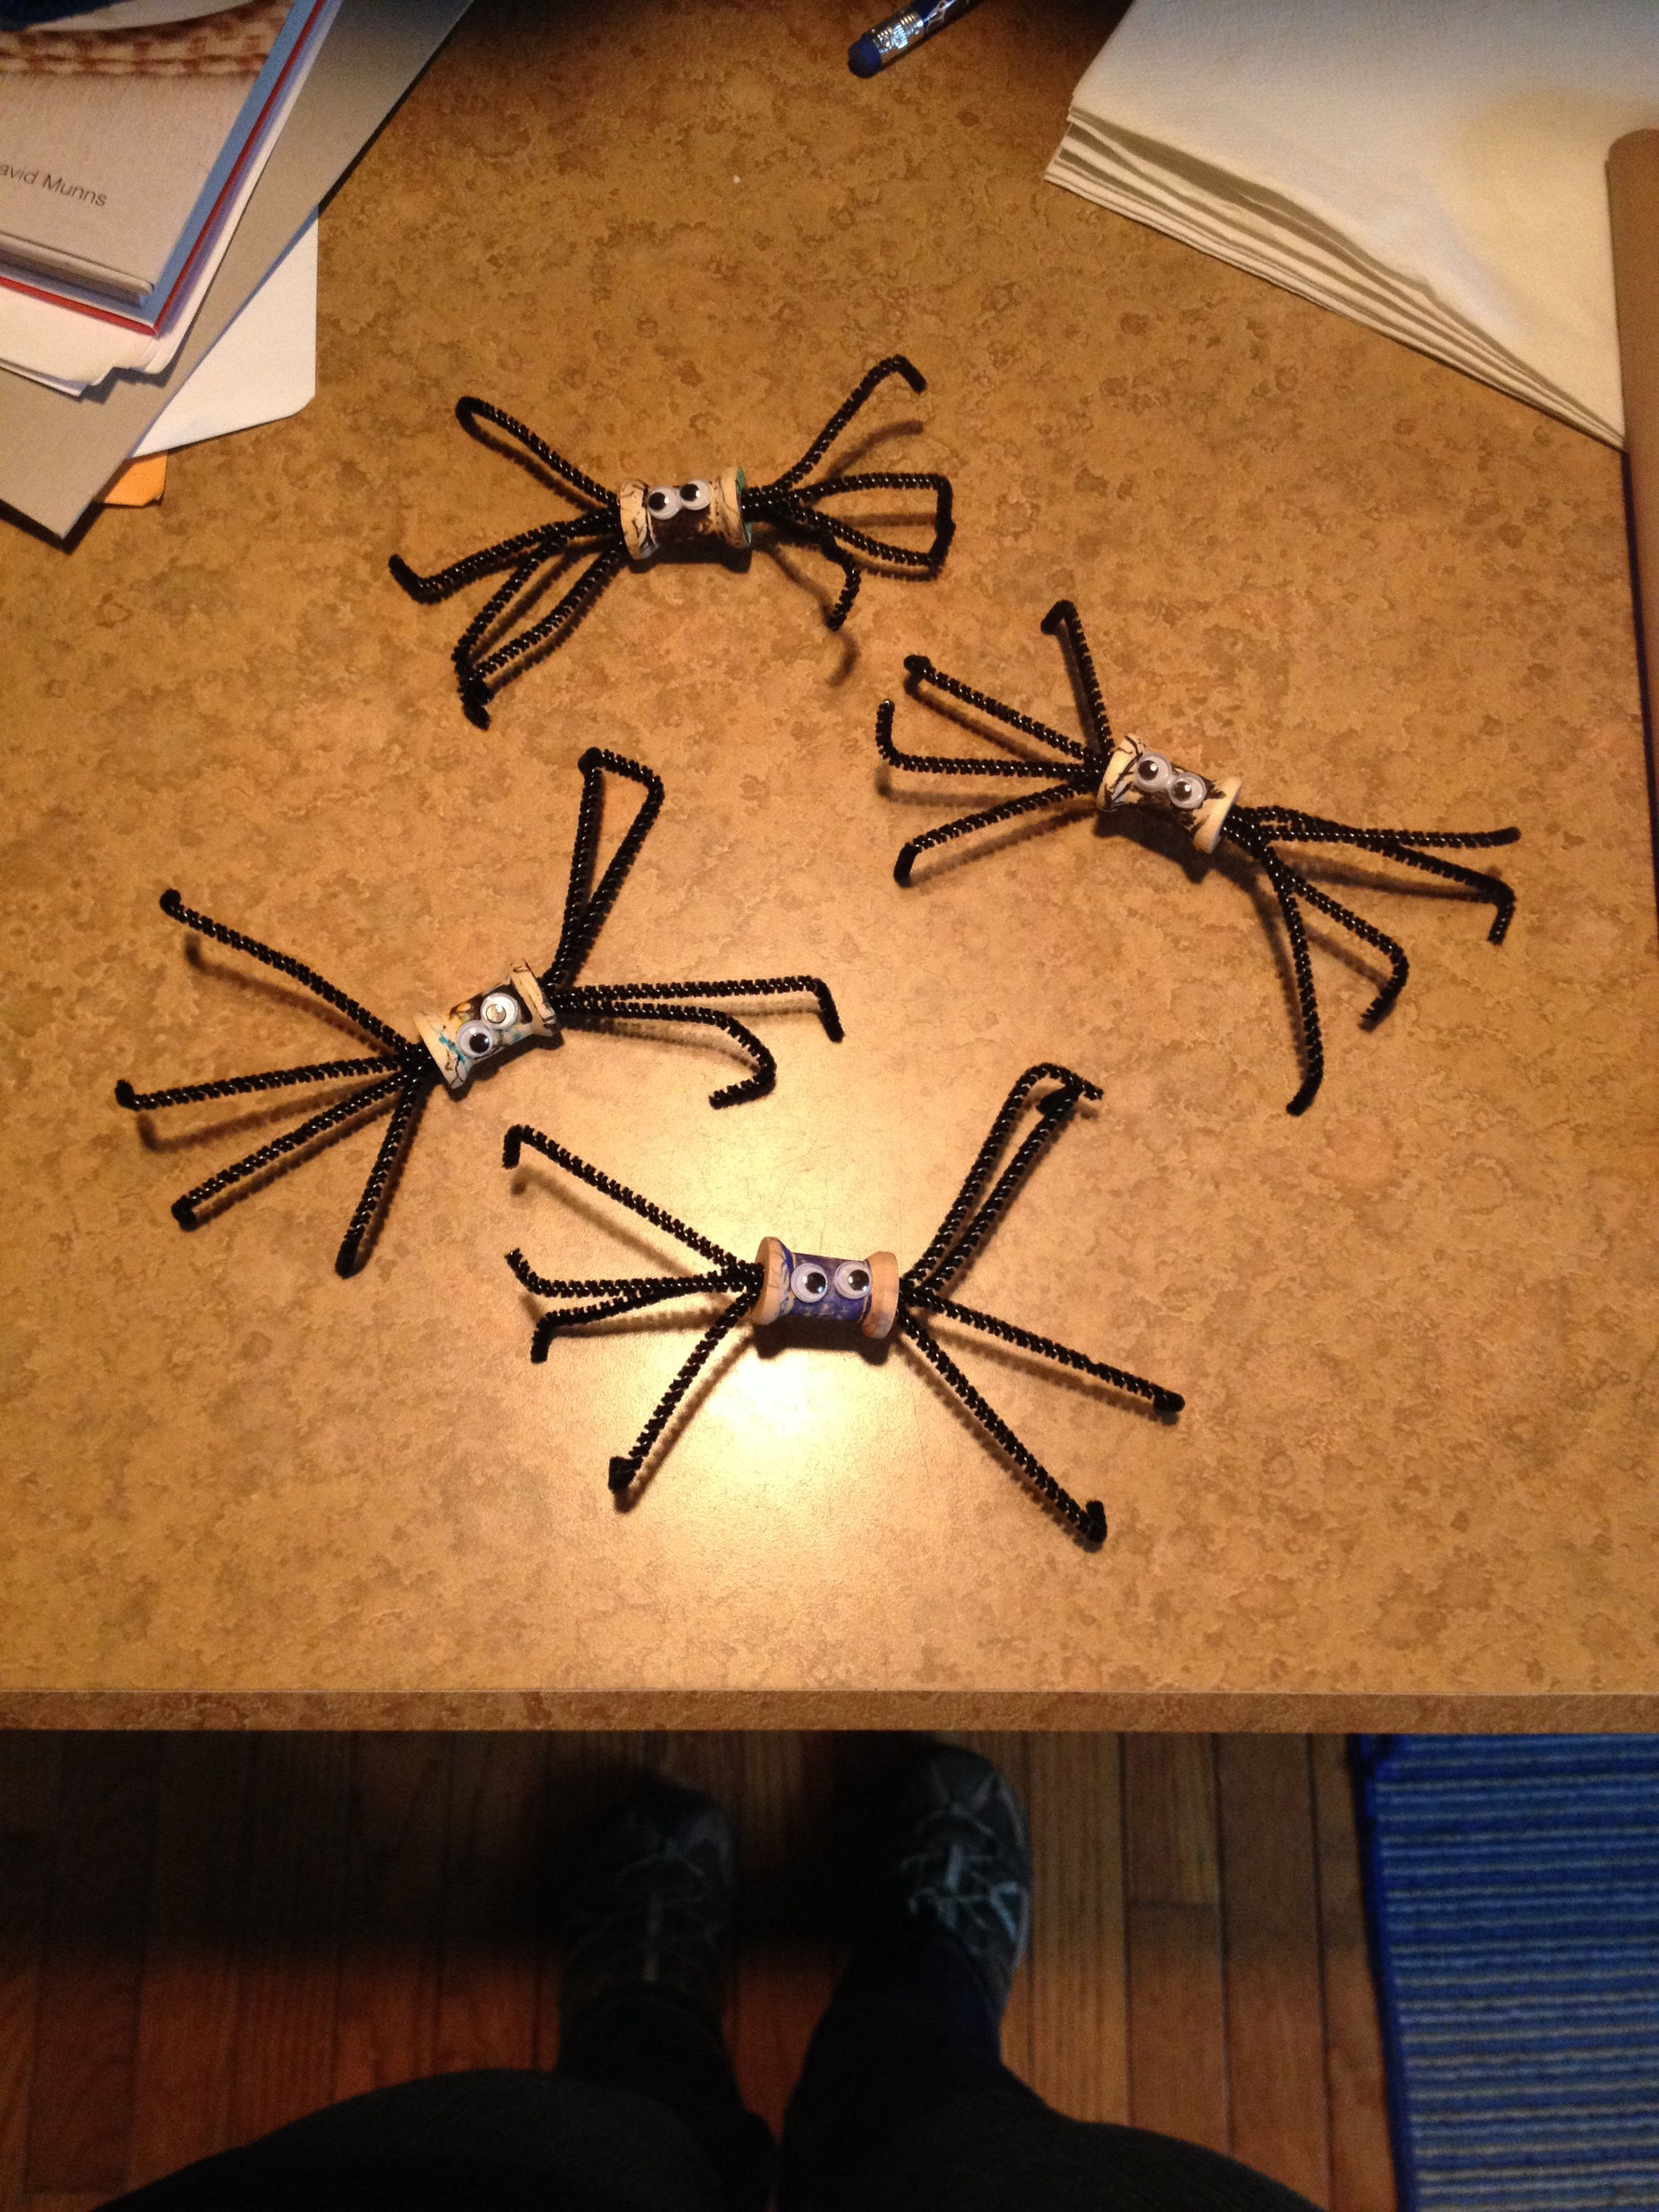 Spool Spiders Using Small Wooden Spools And Black Thin